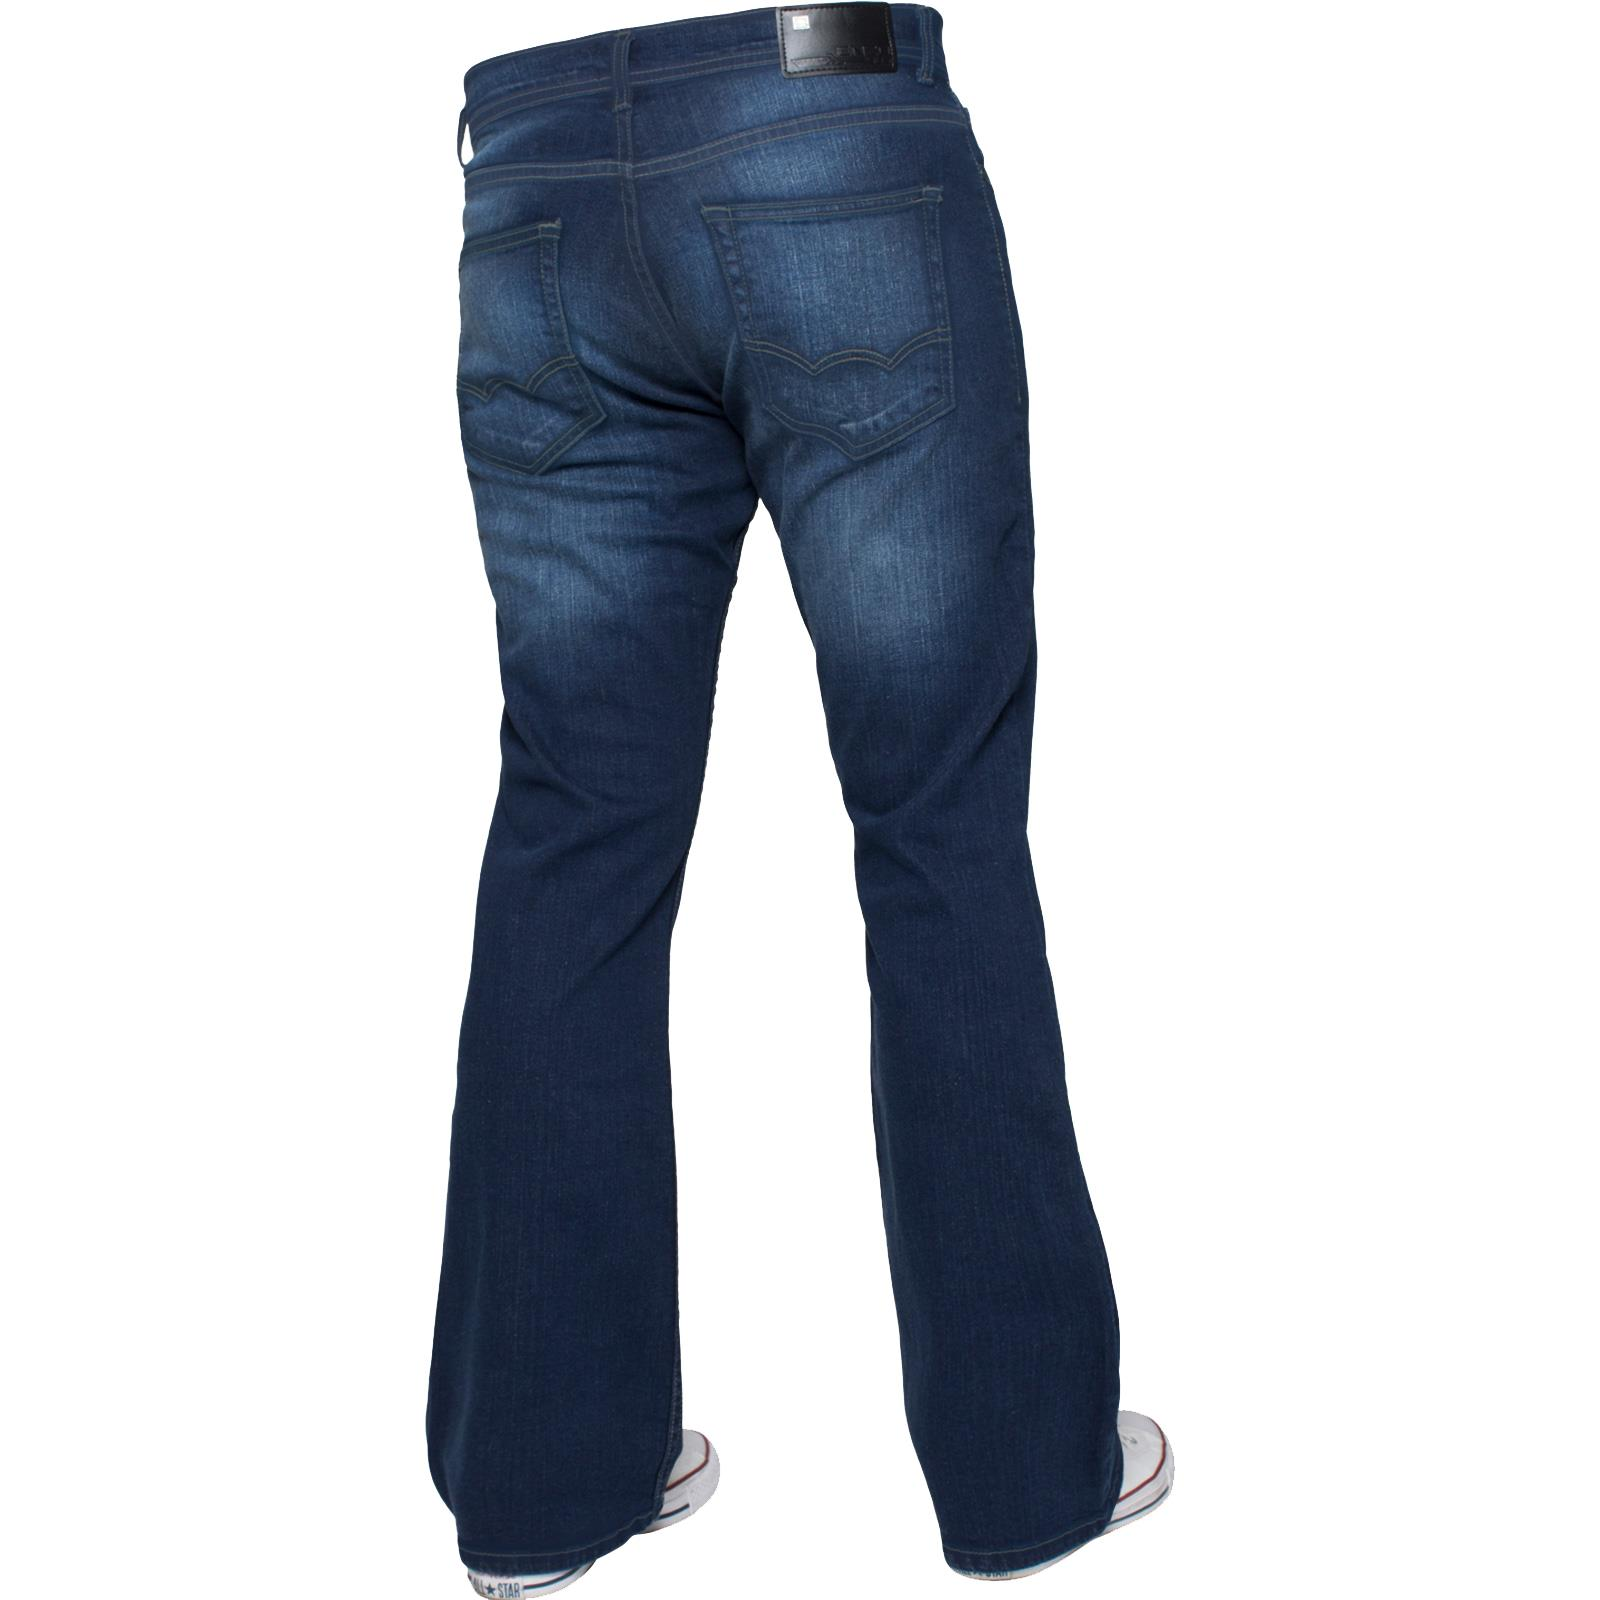 Enzo-Mens-Jeans-Big-Tall-Leg-King-Size-Denim-Pants-Chino-Trousers-Waist-44-034-60-034 miniature 61